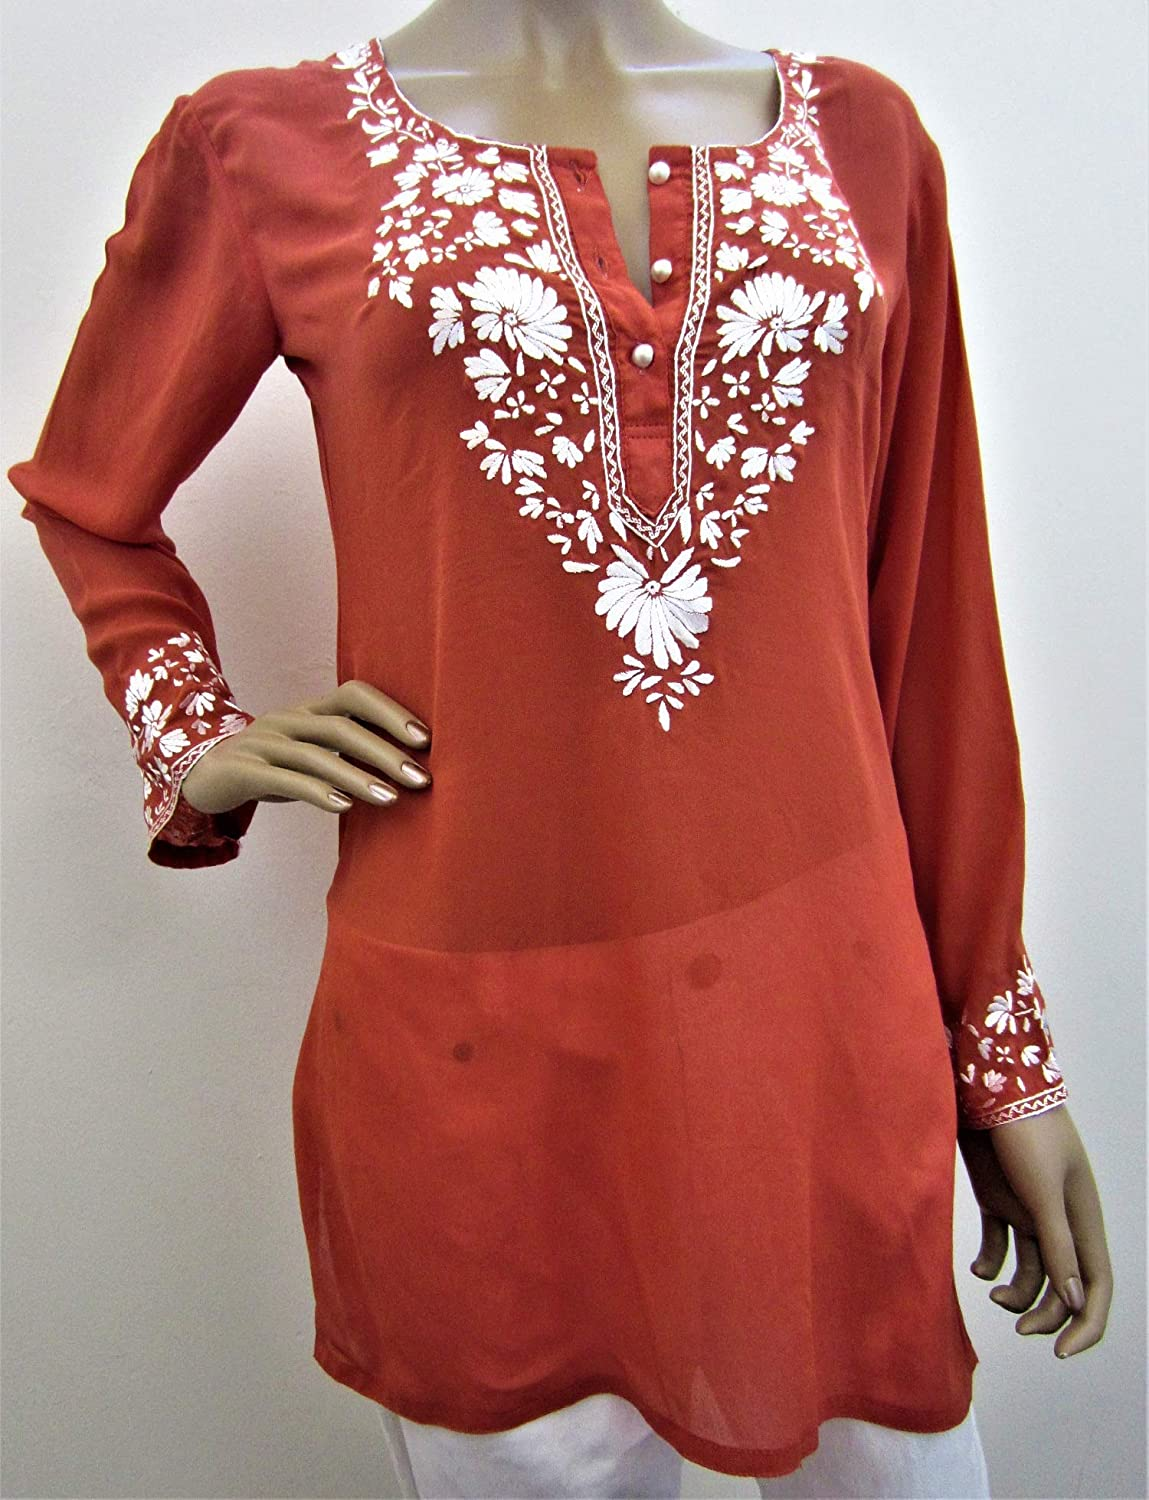 Fara Nawa Women's New Wholesale Exquisite Embroidered Tunic Designer Hand Opening large release sale